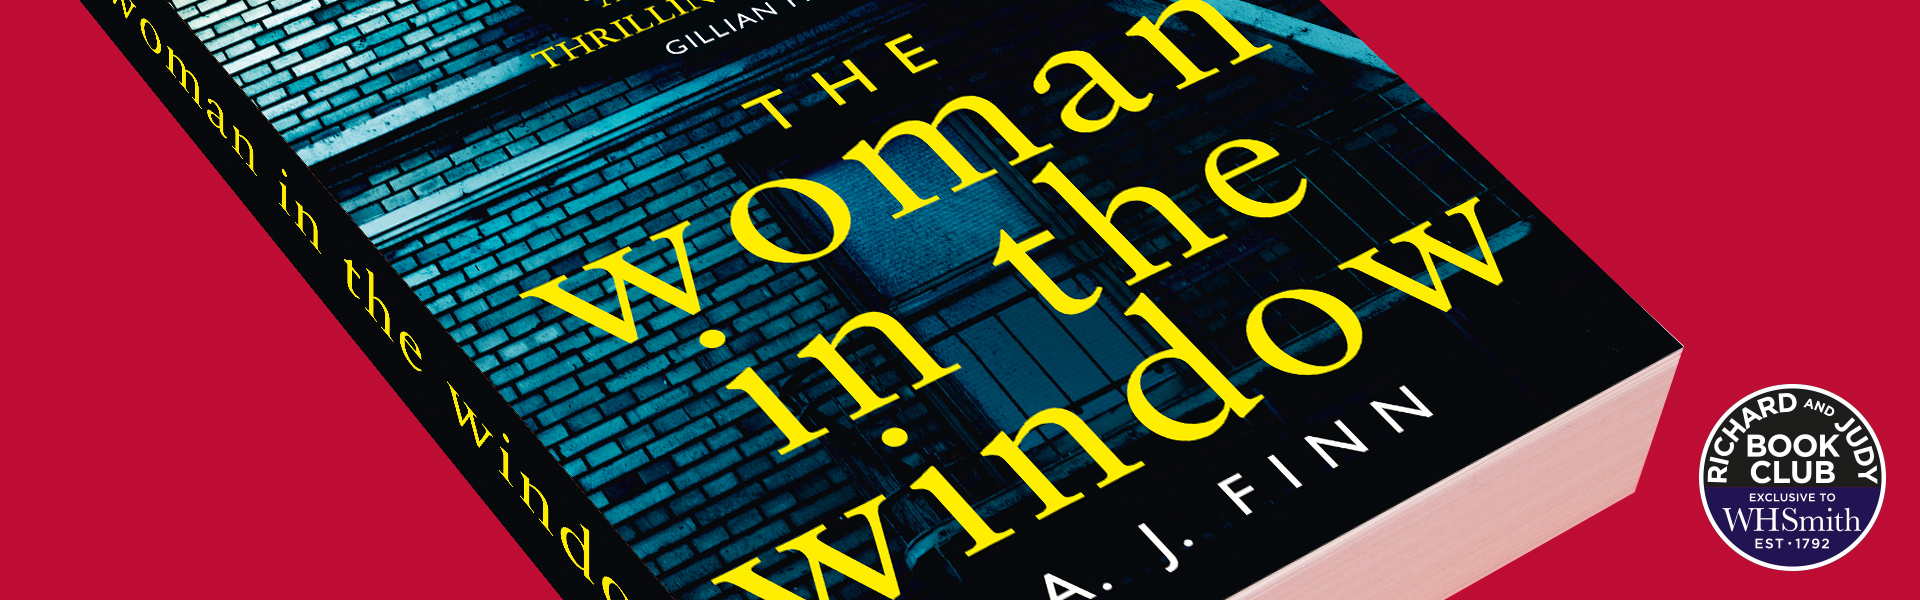 Richard And Judy Introduce The Woman in the Window by A J Finn